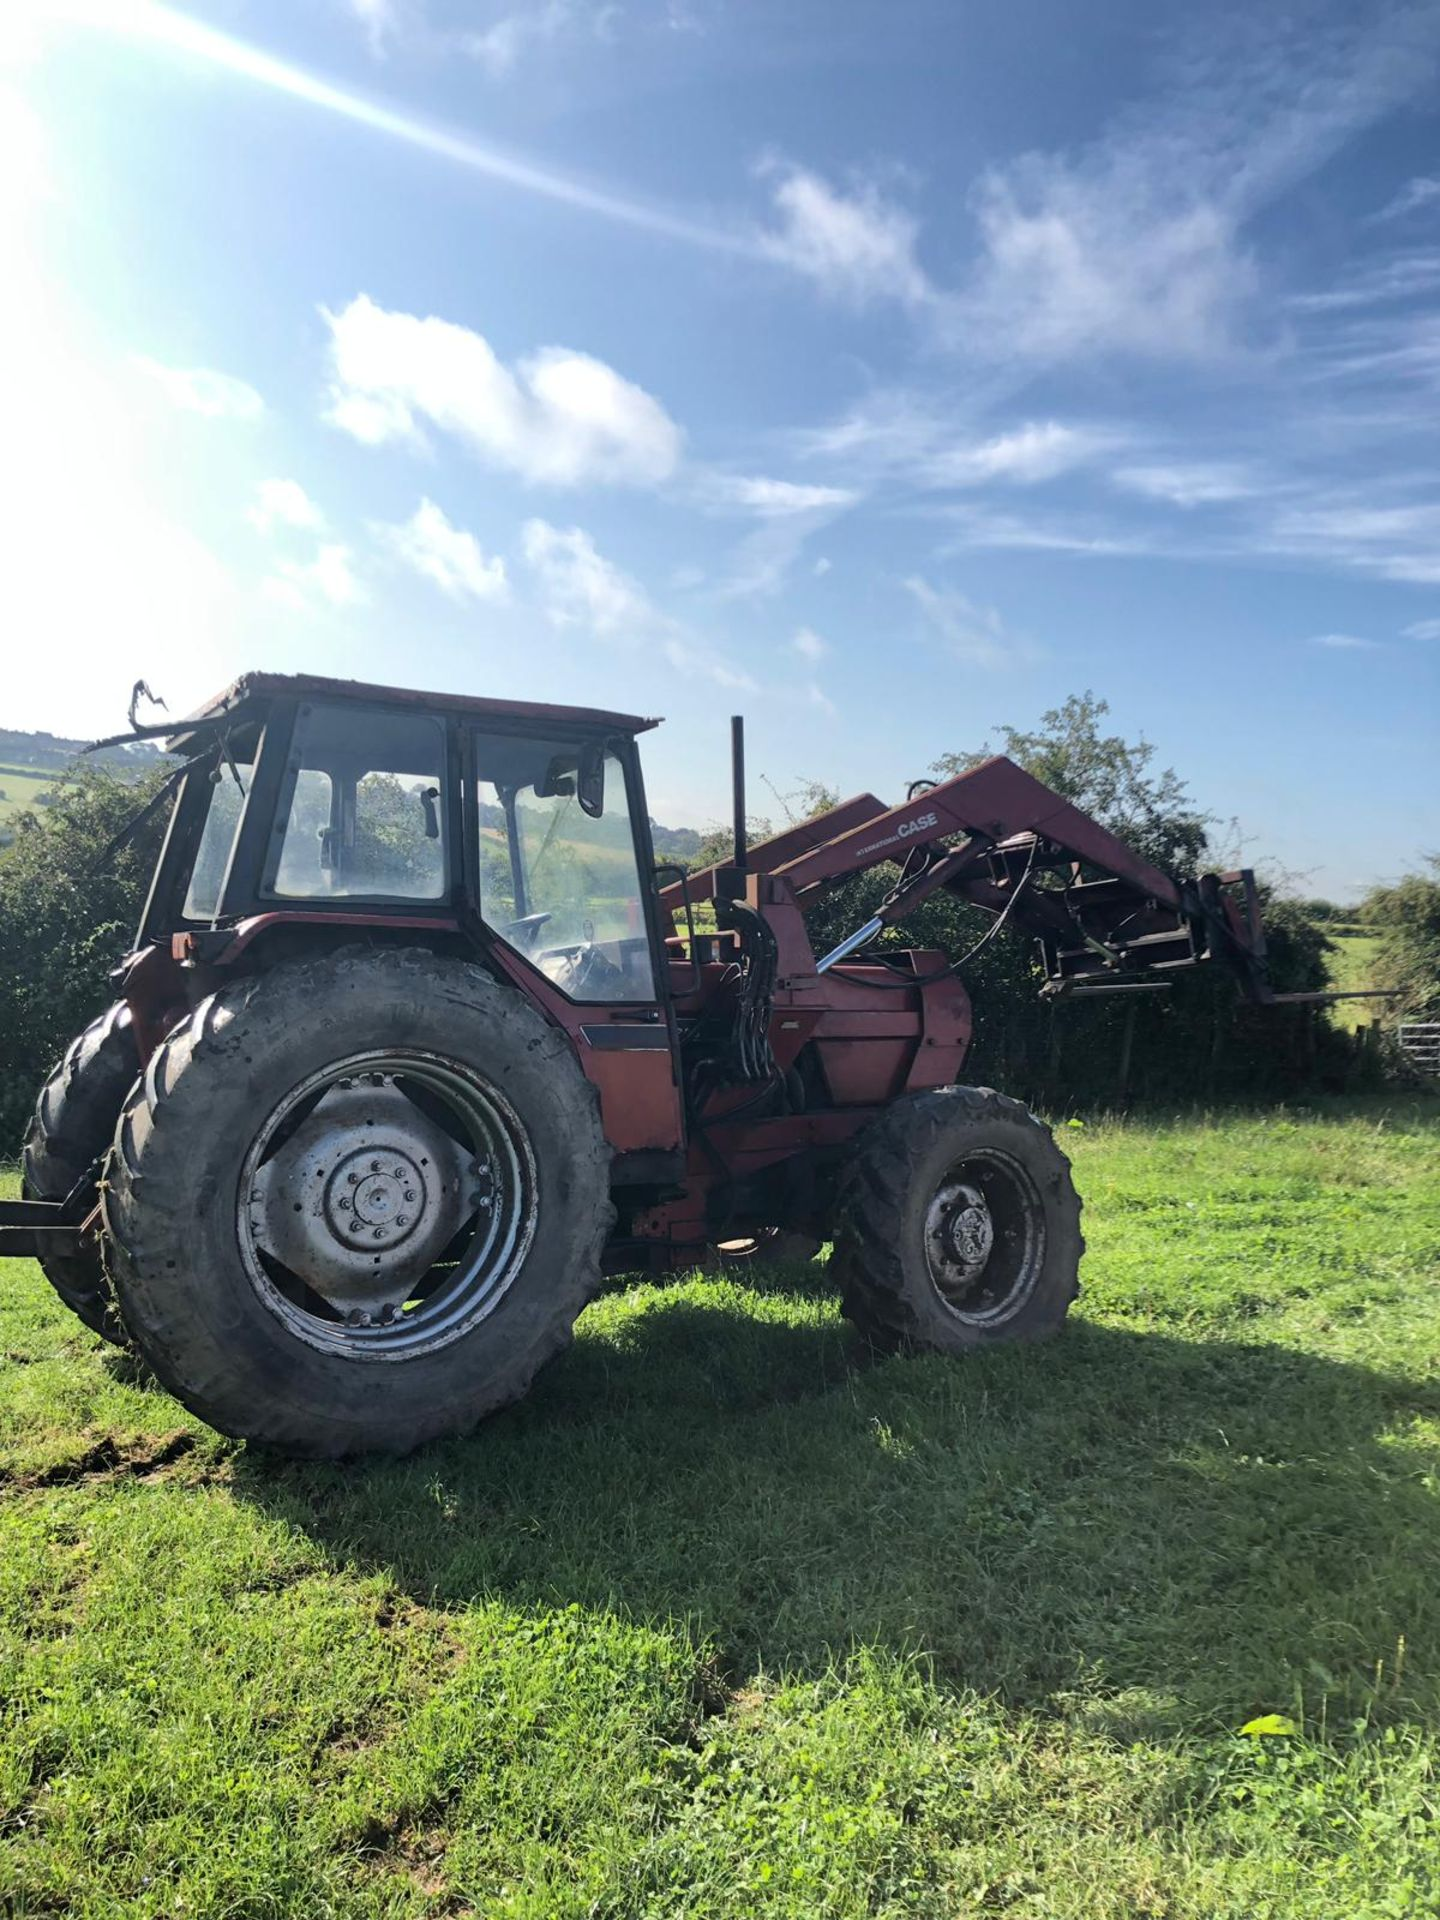 Lot 184 - CASE INTERNATIONAL 895 LOADER TRACTOR, RUNS AND WORKS, DOES WHAT IT SHOULD, 4 WHEEL DRIVE *PLUS VAT*